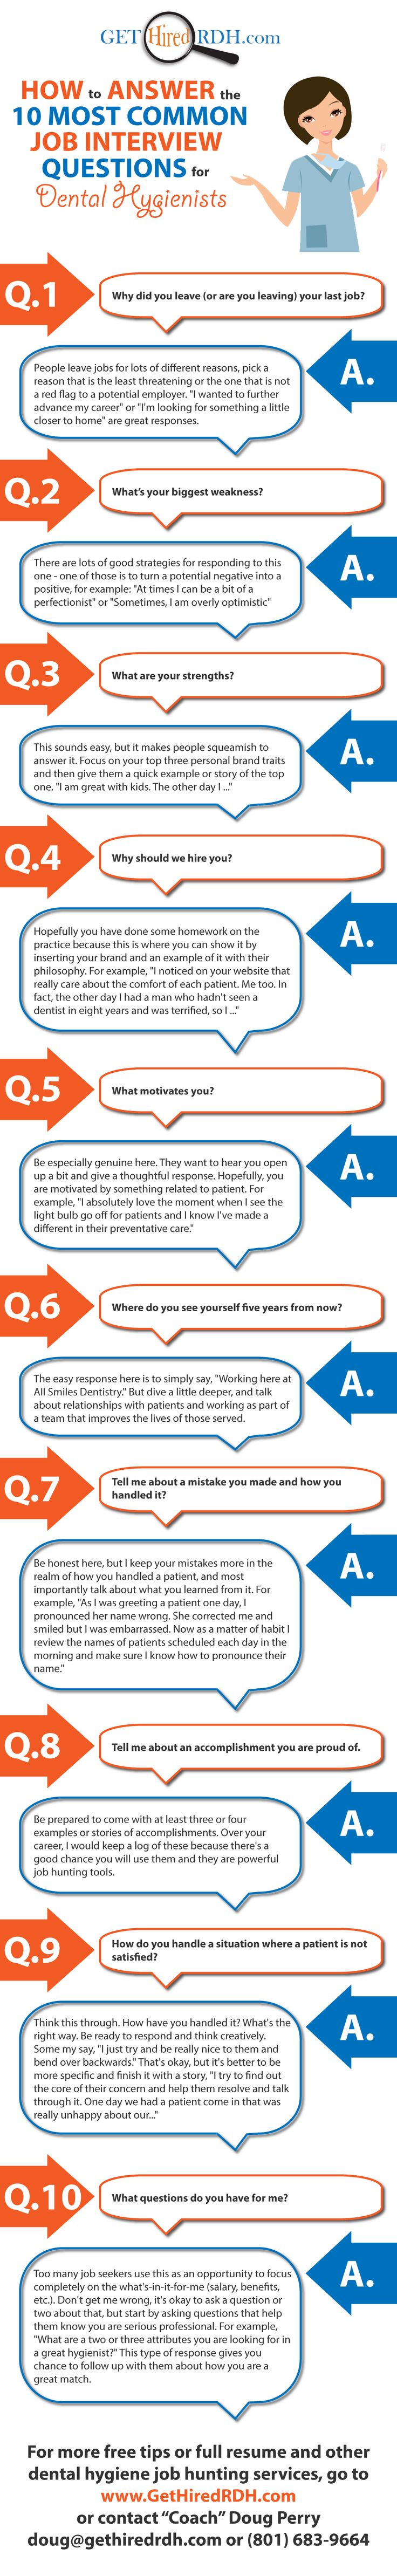 17 best ideas about interview questions for nurses how to answer the 10 most common interview questions for dental hygienists get more at gethiredrdh